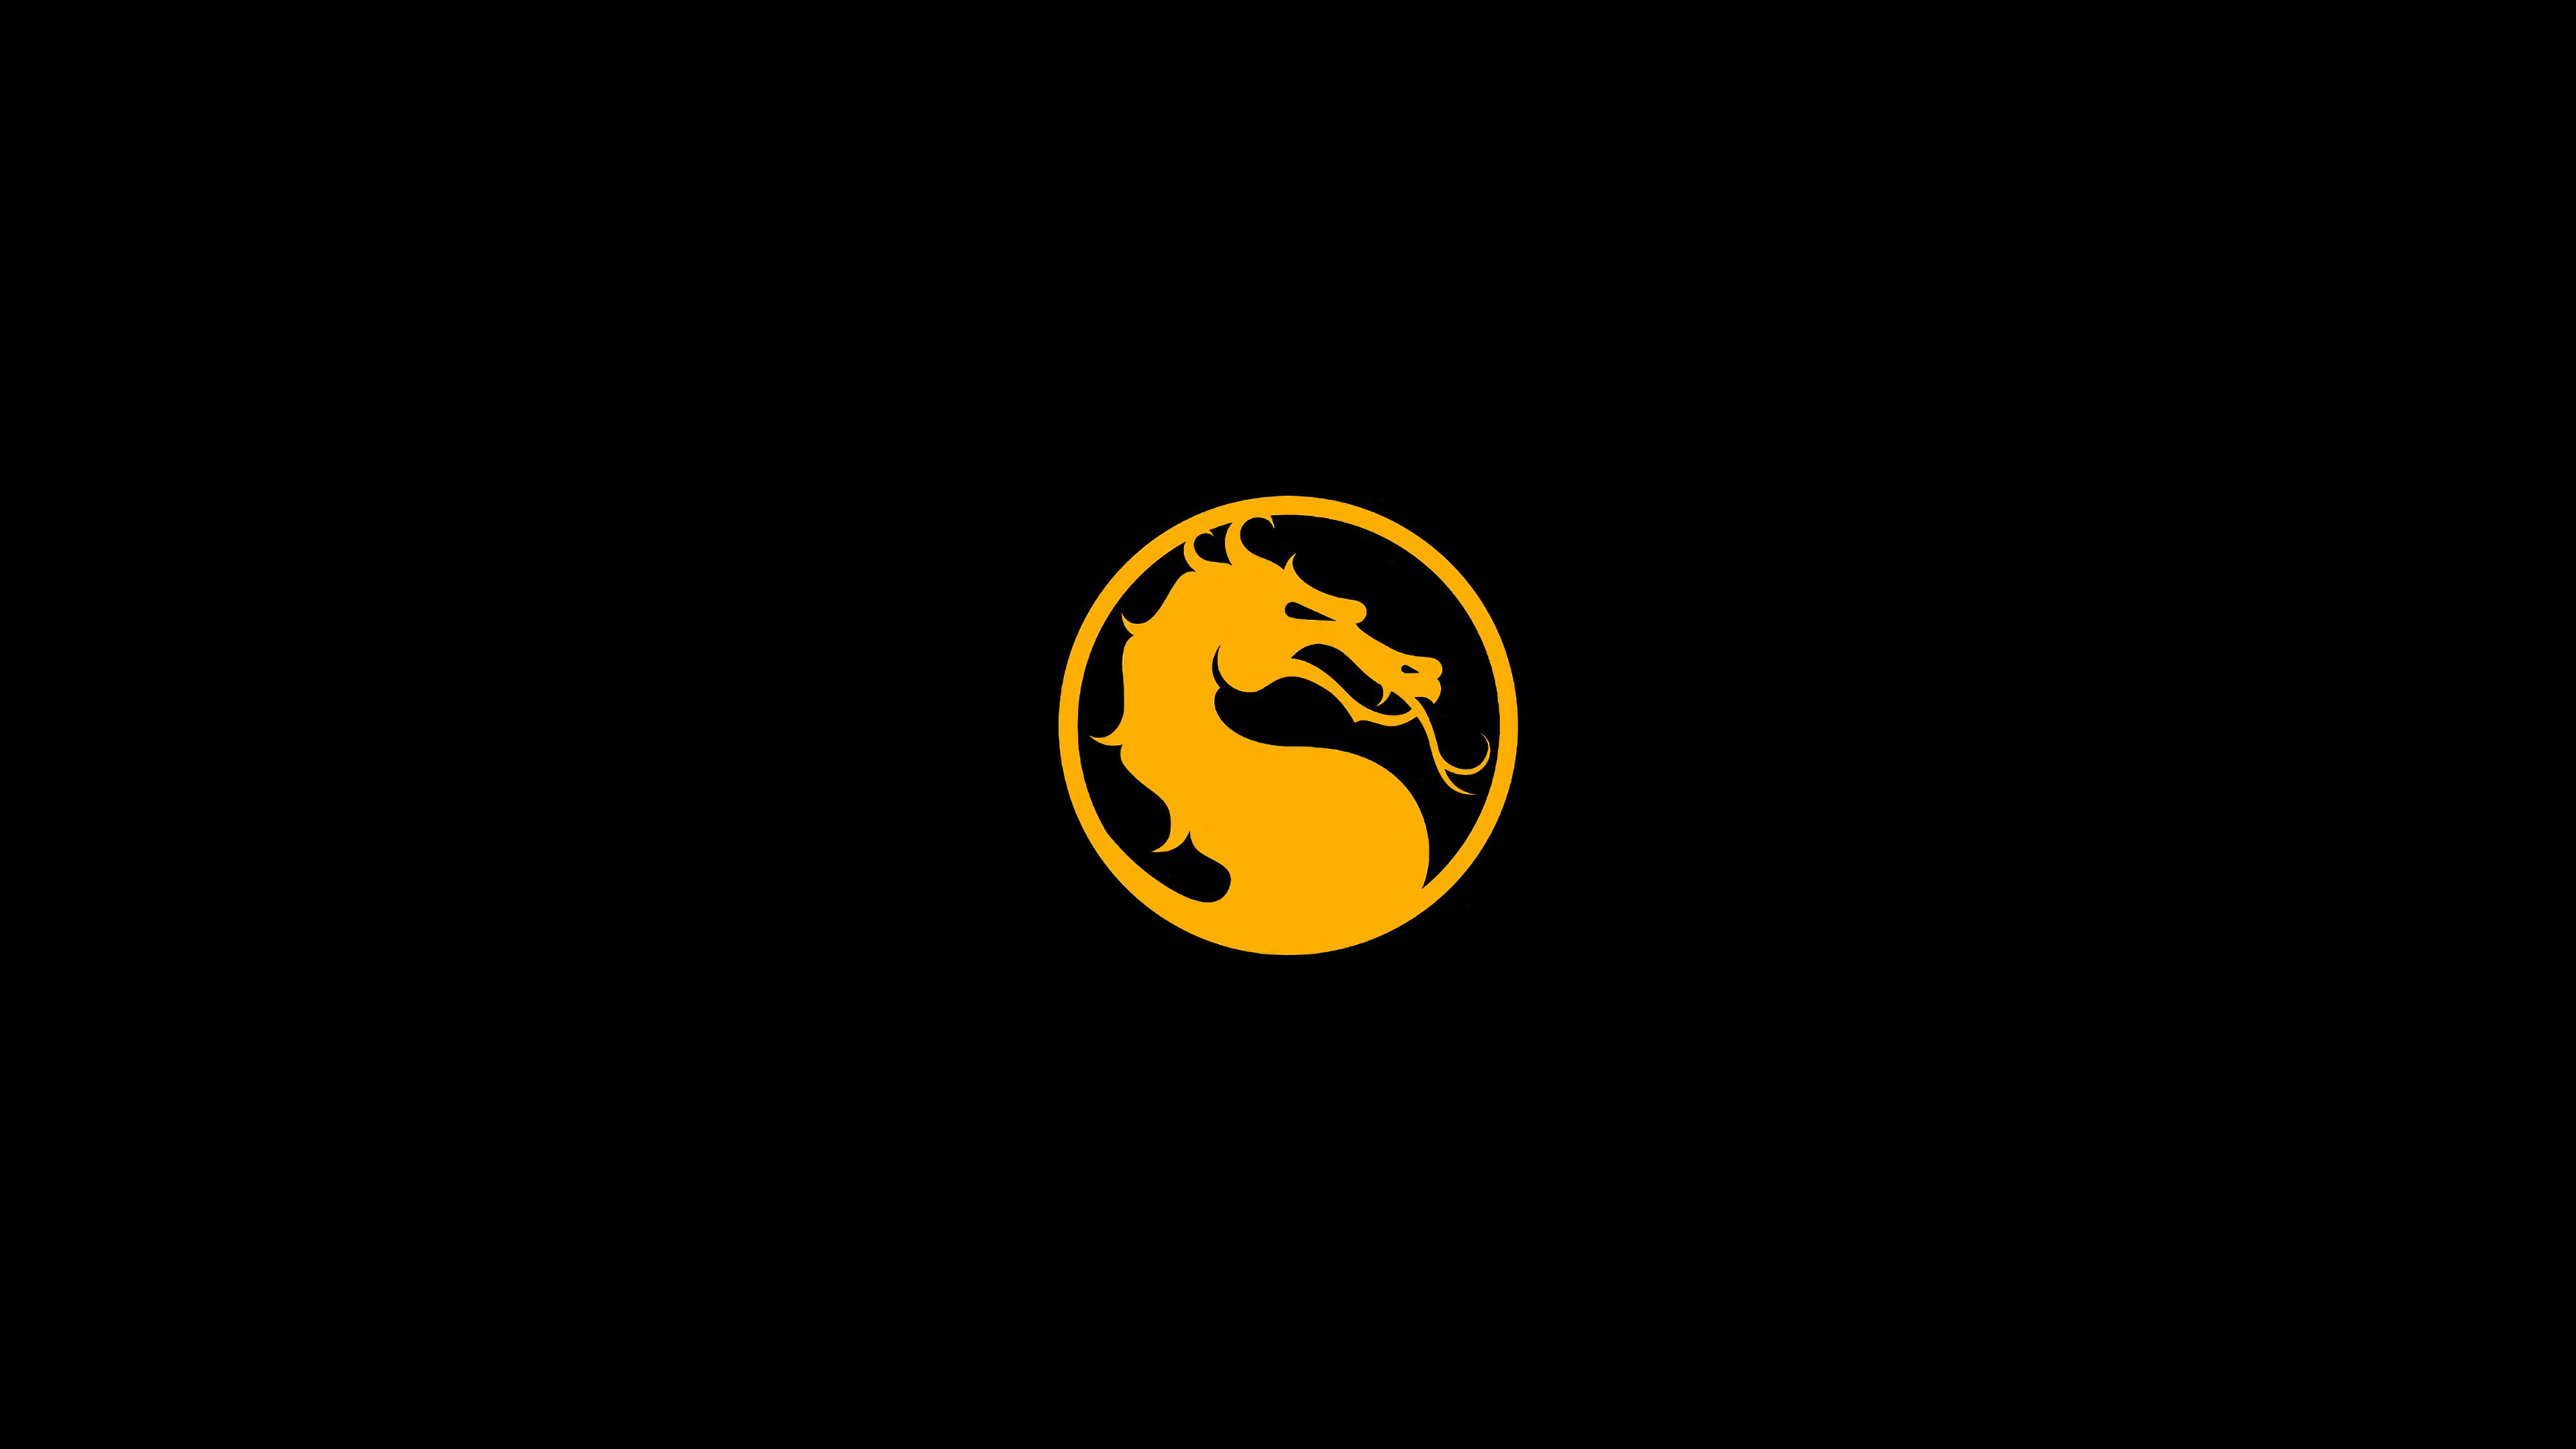 Mortal Kombat 11 background dragon logo » Mortal Kombat.